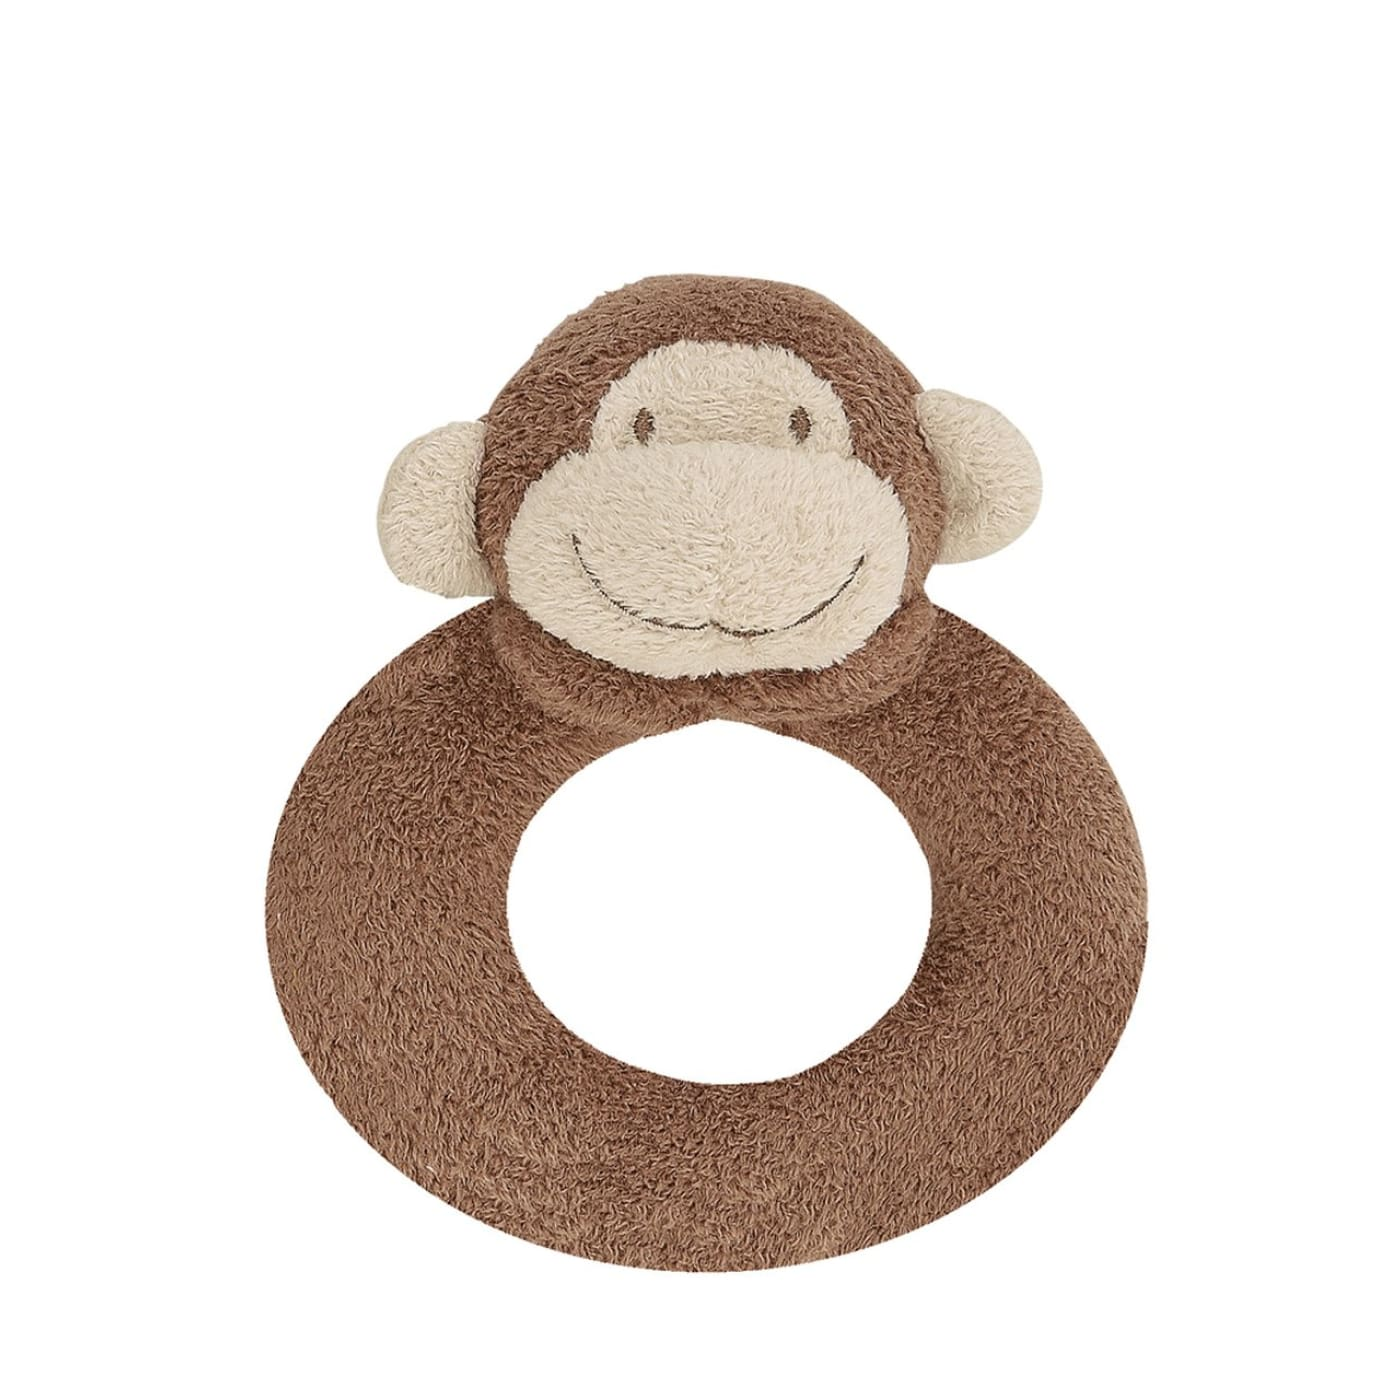 Angel Dear Ring Rattle - Brown Monkey - TOYS & PLAY - BLANKIES/COMFORTERS/RATTLES